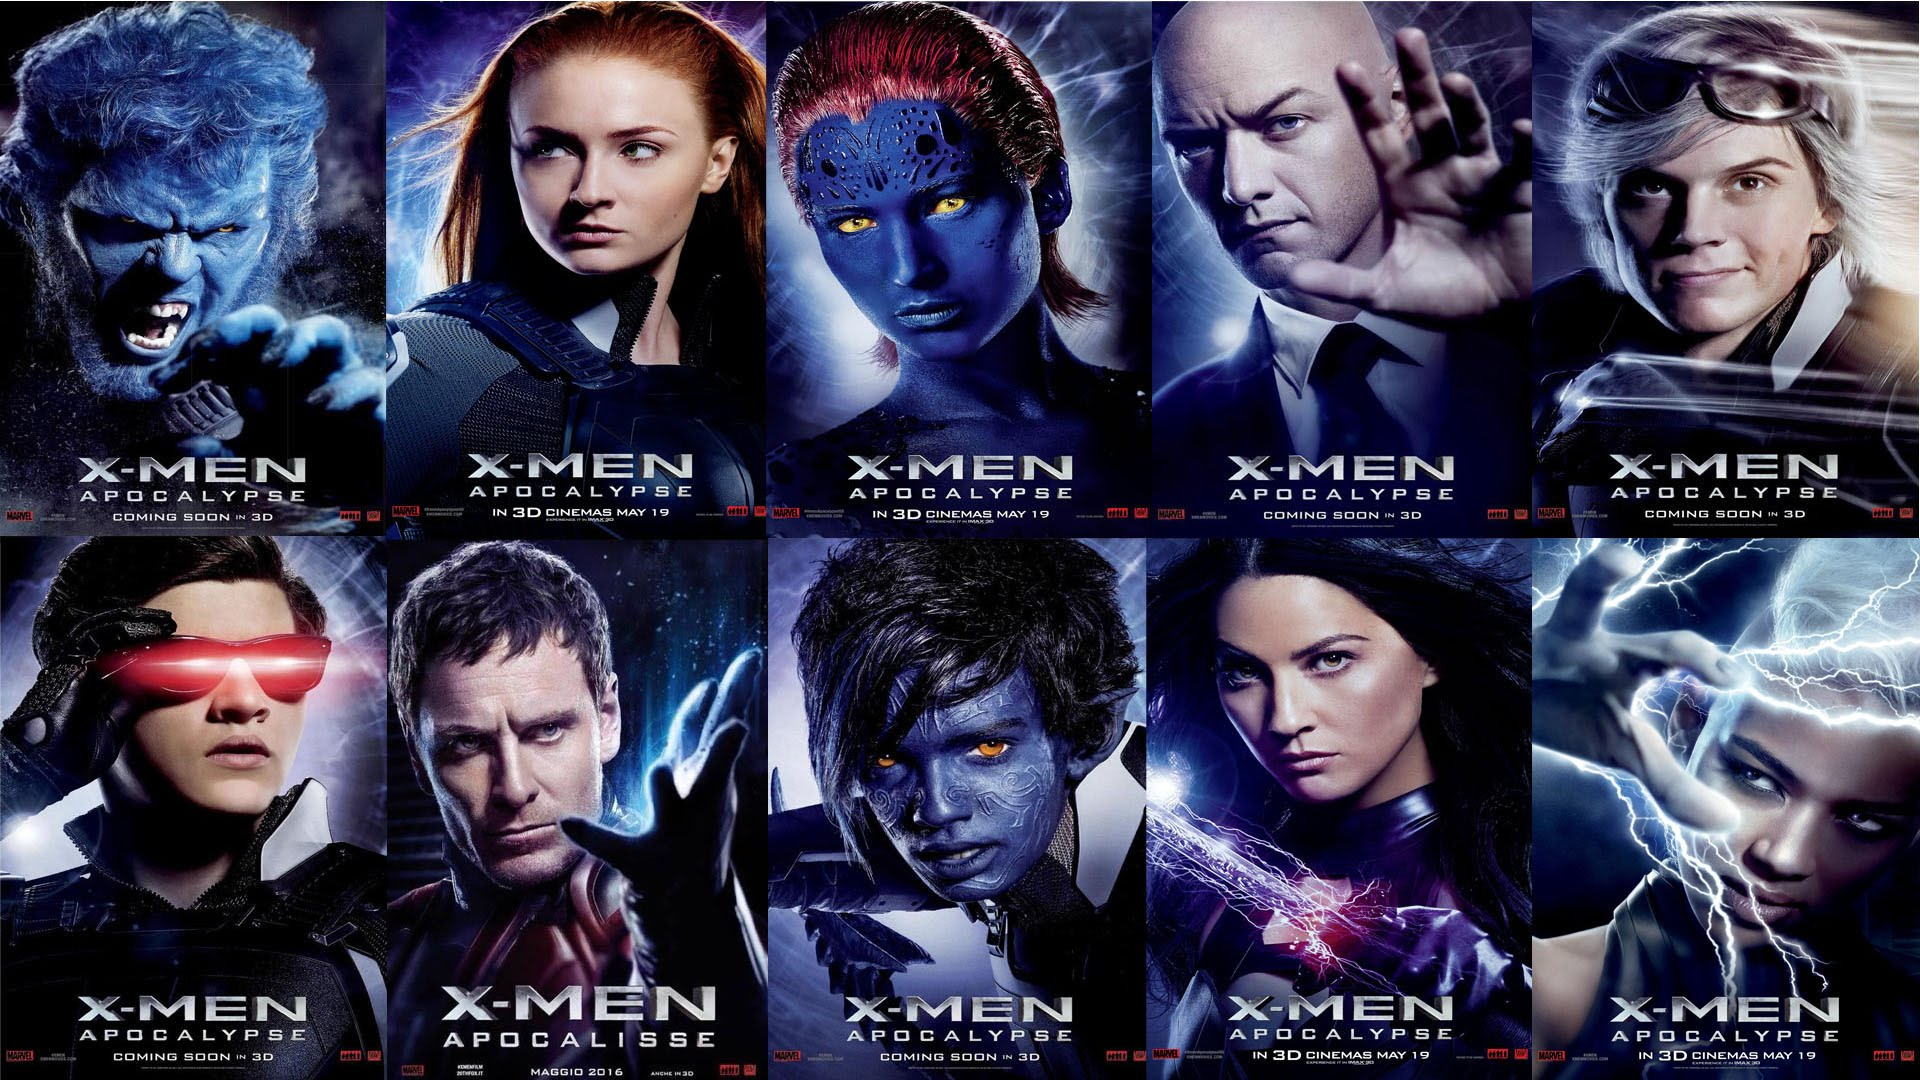 movie review xmen apocalypse alvinology